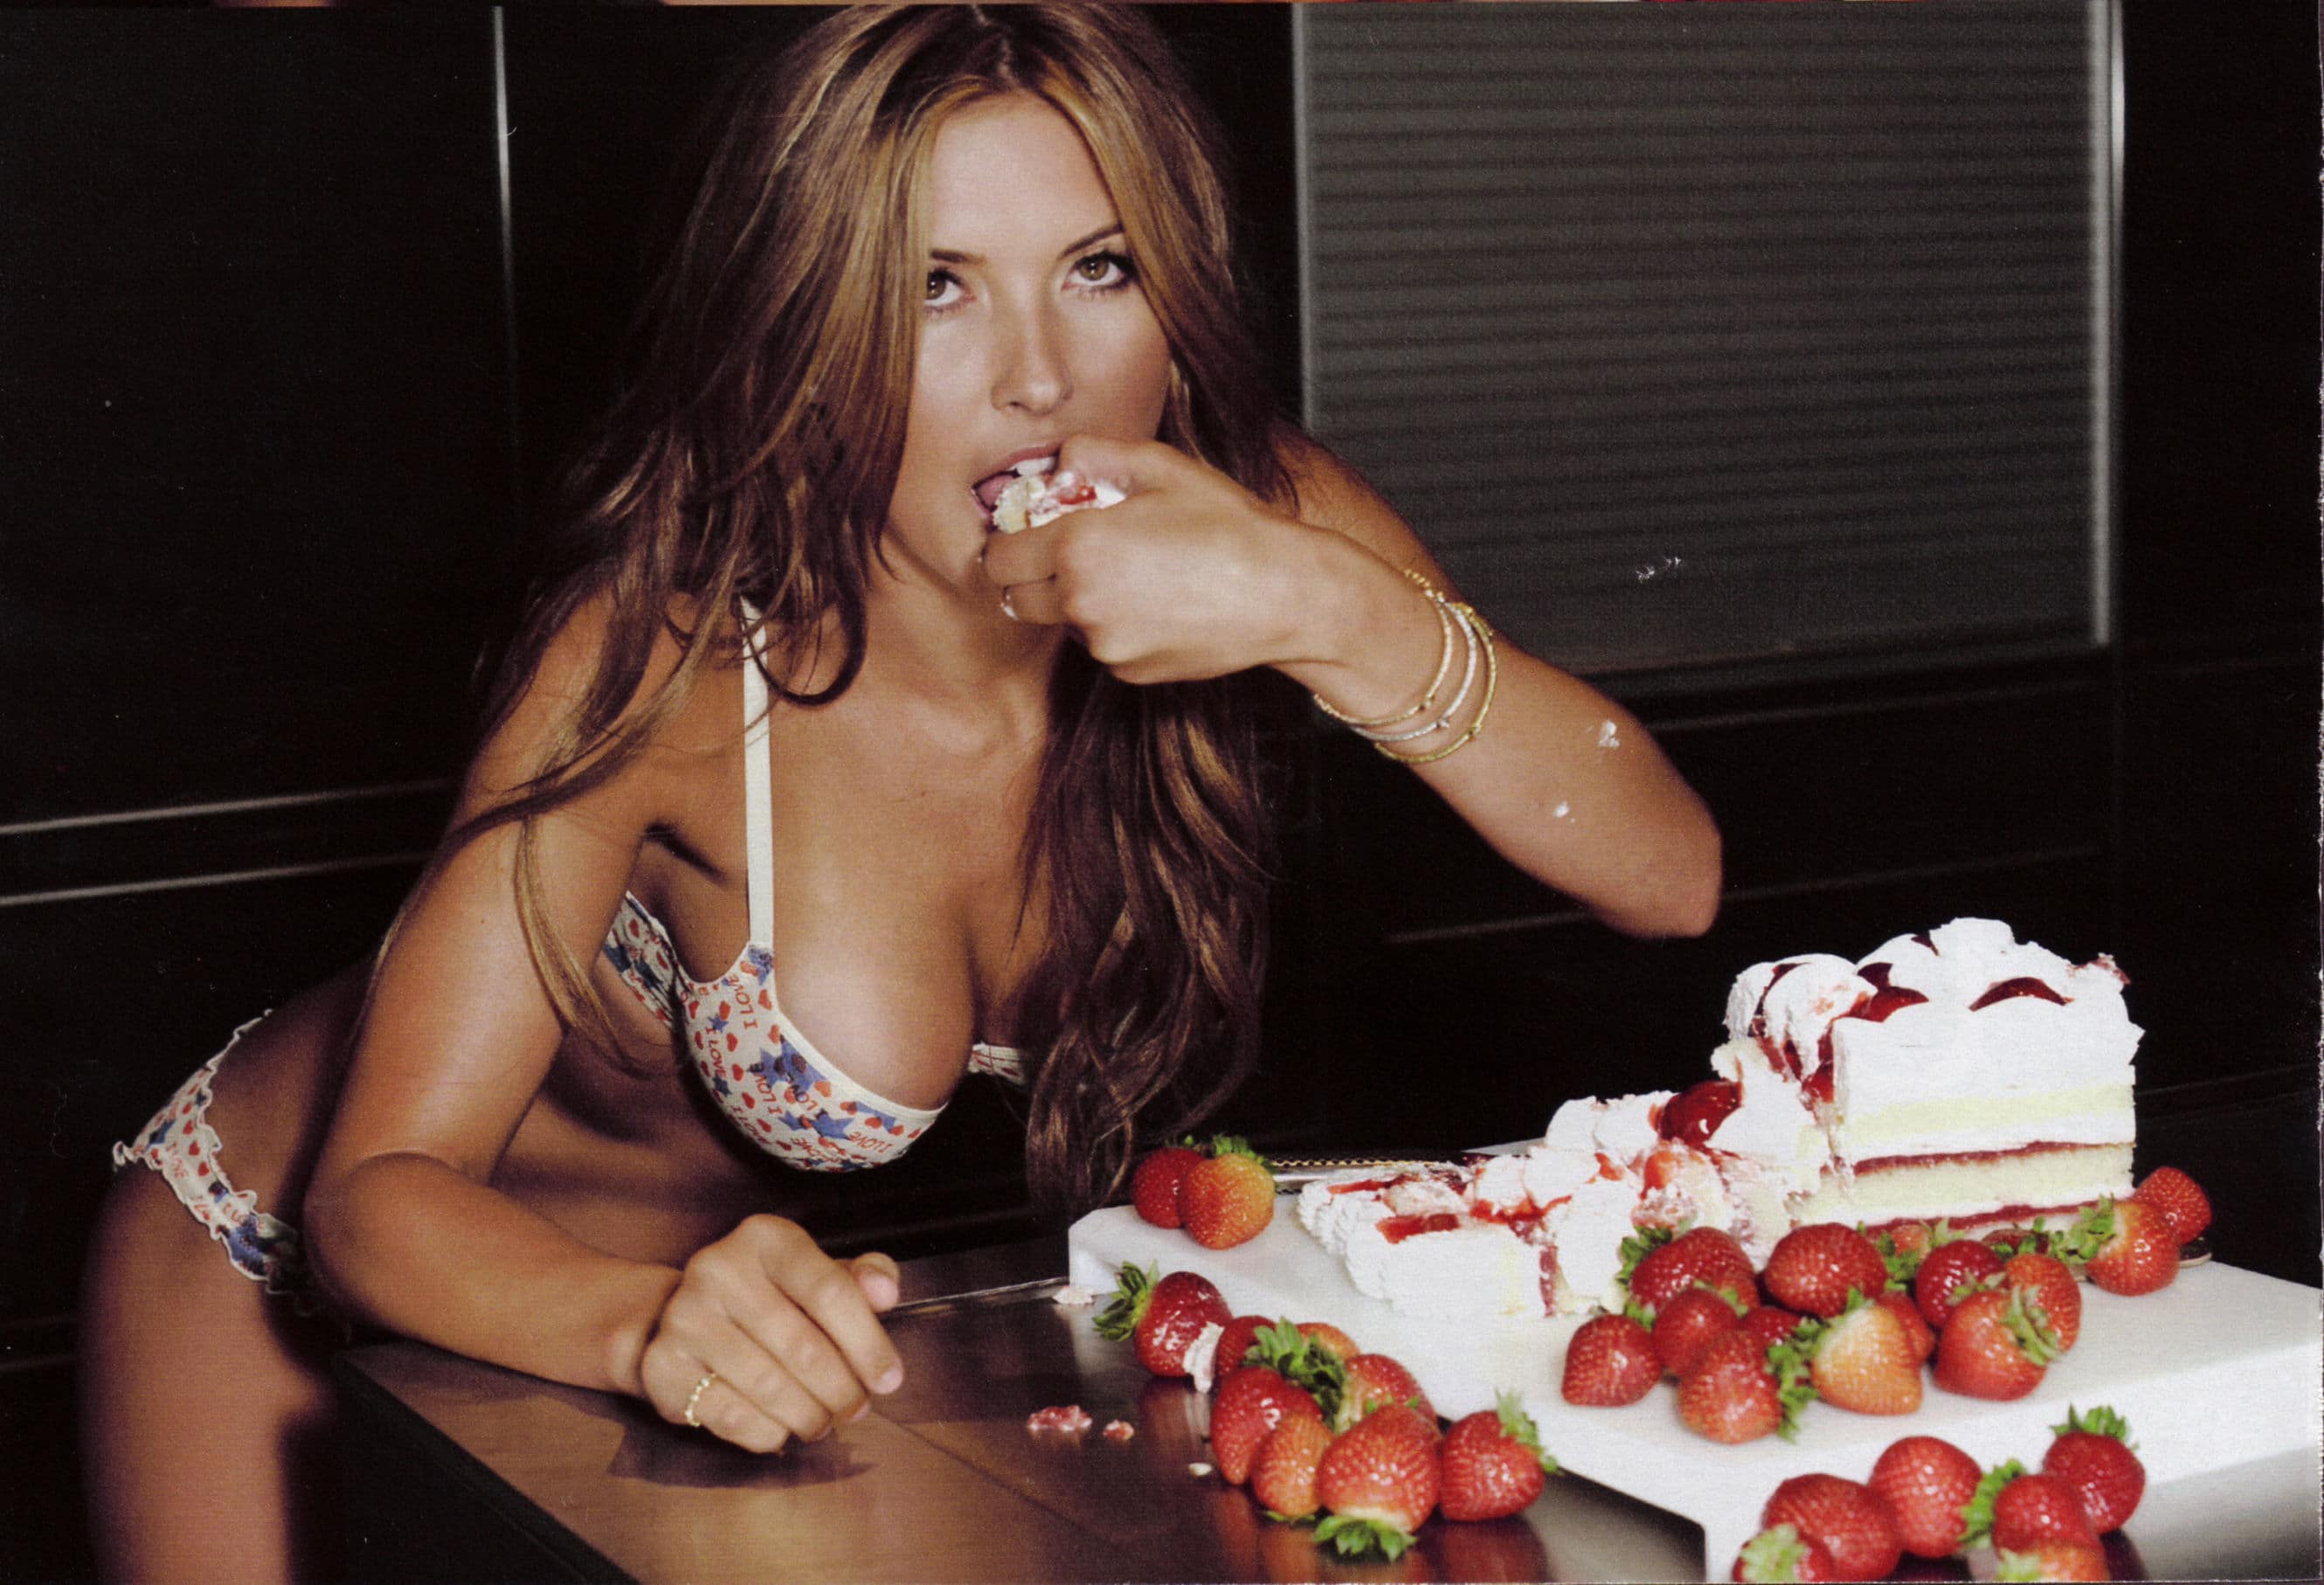 Audrina Patridge hot pic